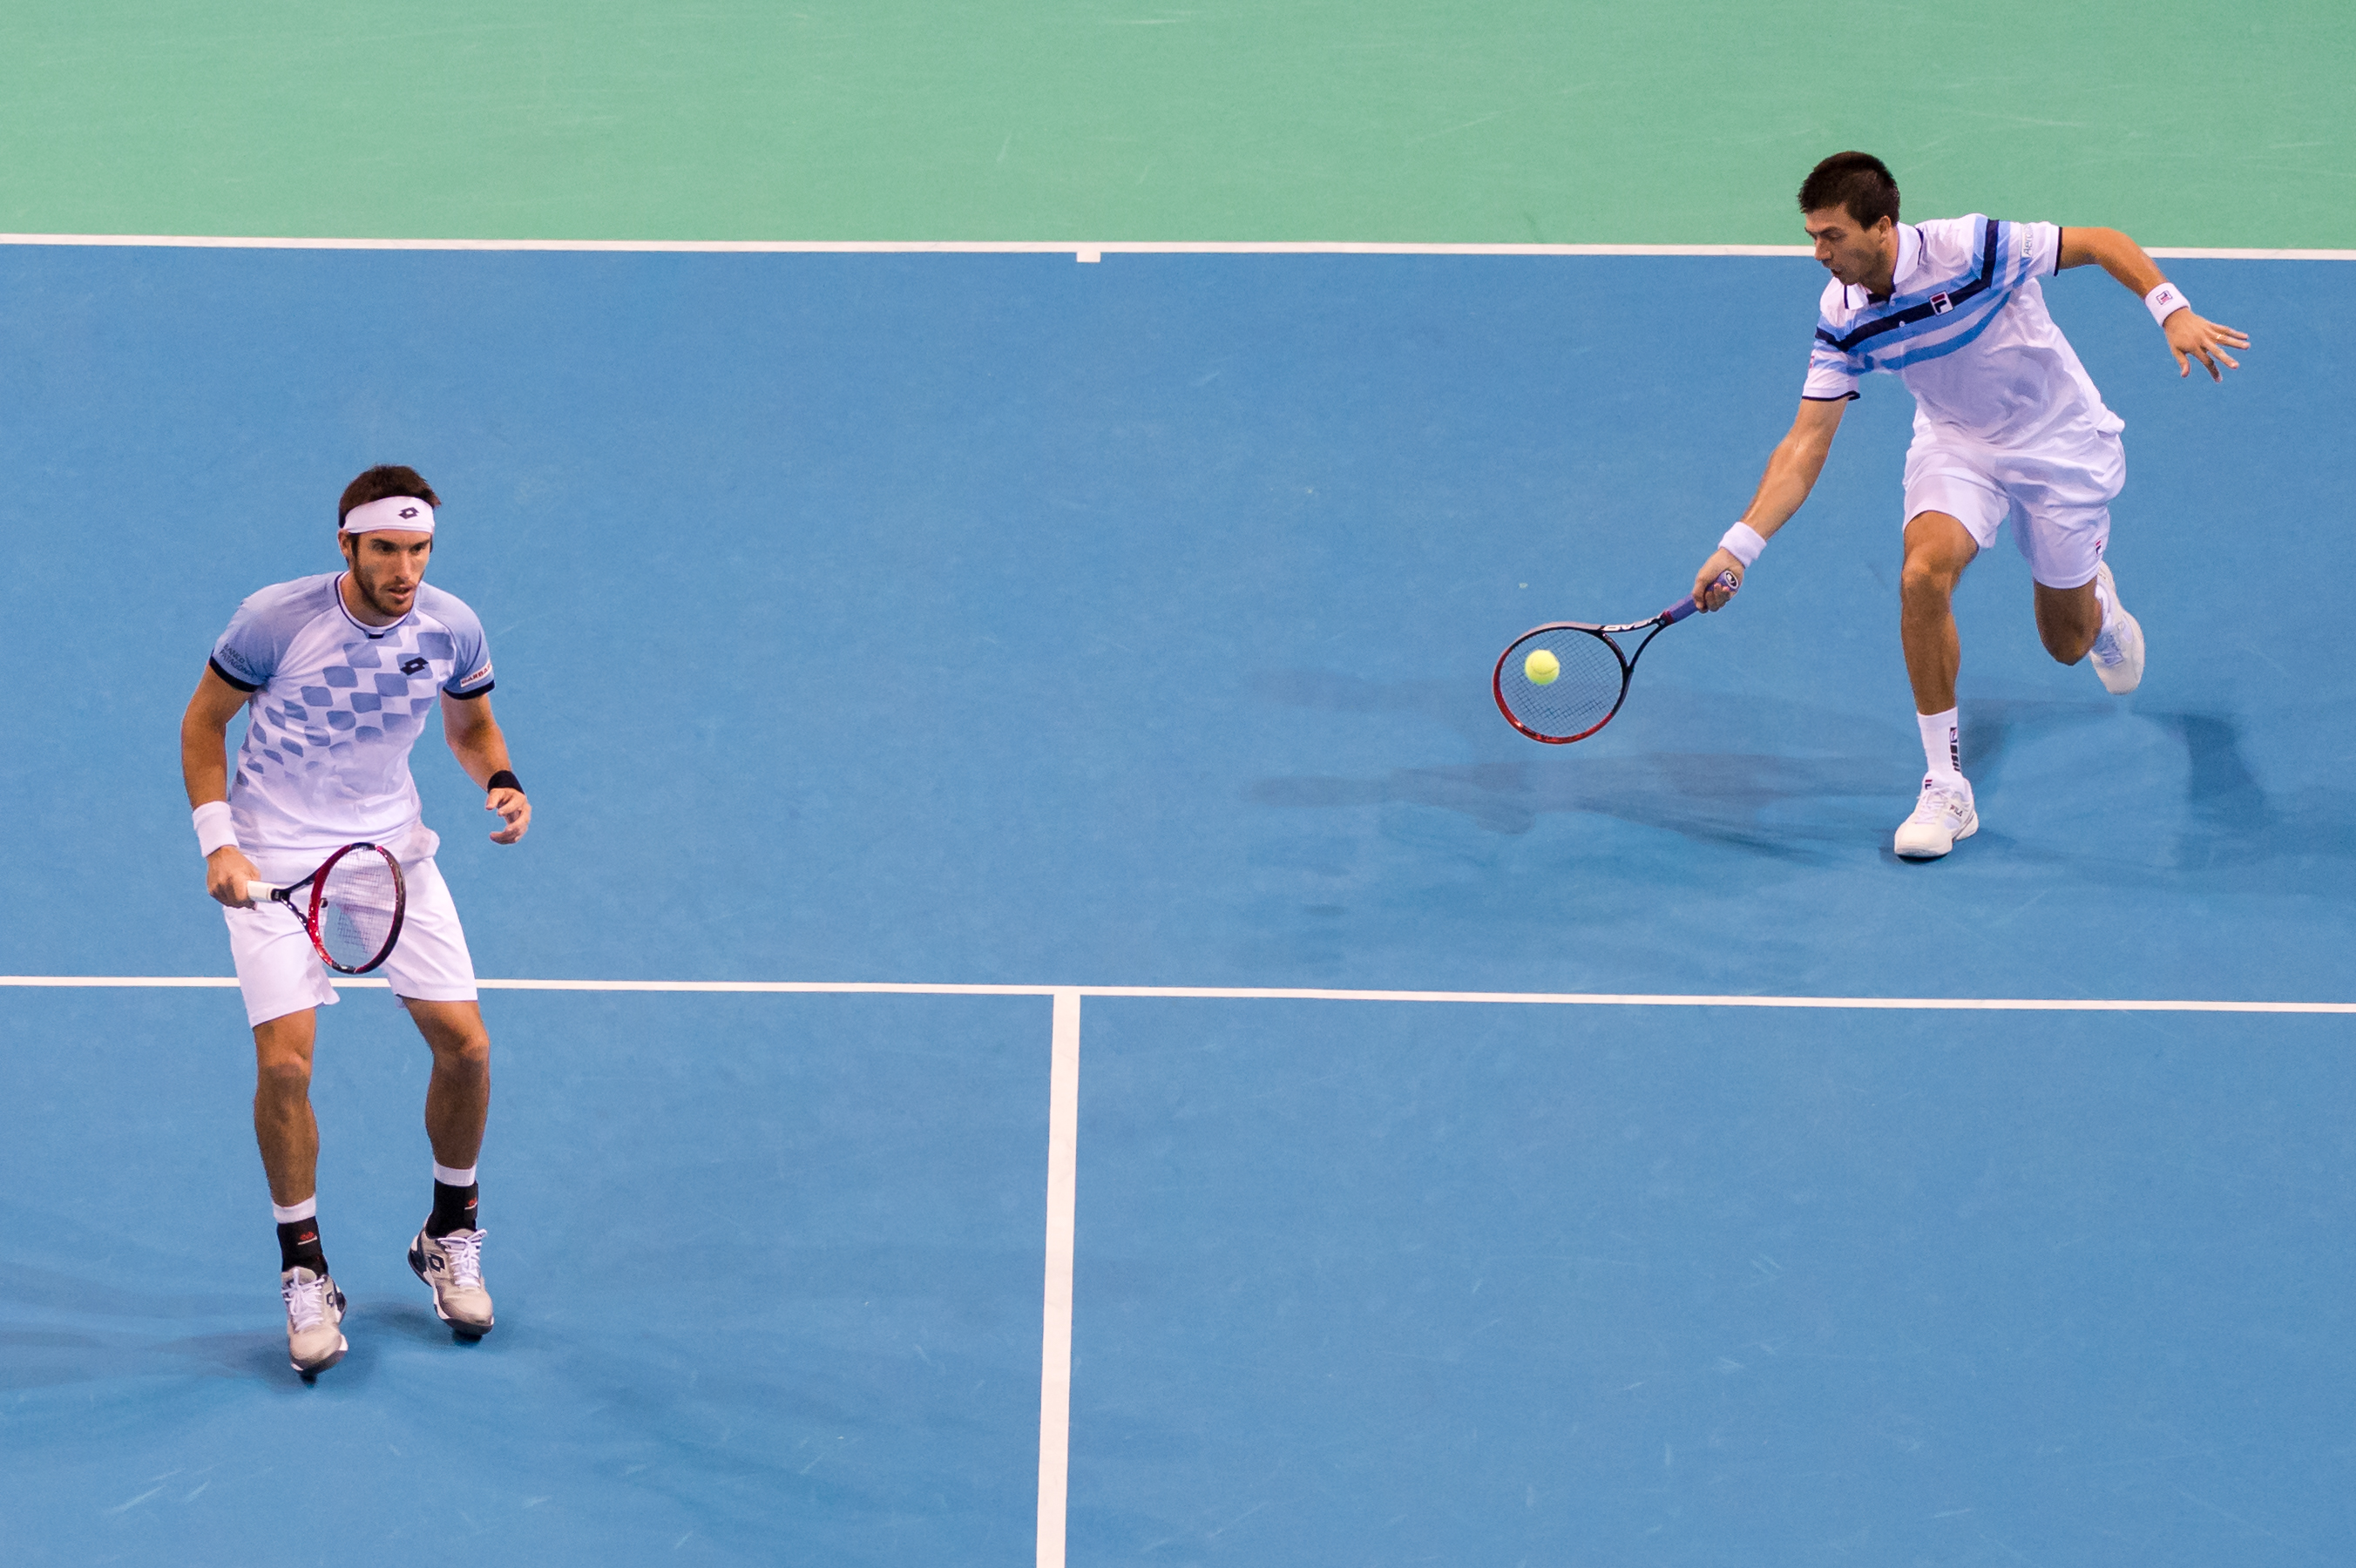 Argentina's Leonardo Mayer, left, and Carlos Berlocq return the ball to Belgium's Steve Darcis and Ruben Bemelmans during the doubles match at the Davis Cup World Group semifinals between Belgium and Argentina in Brussels, Saturday, Sept. 19, 2015. (AP Ph